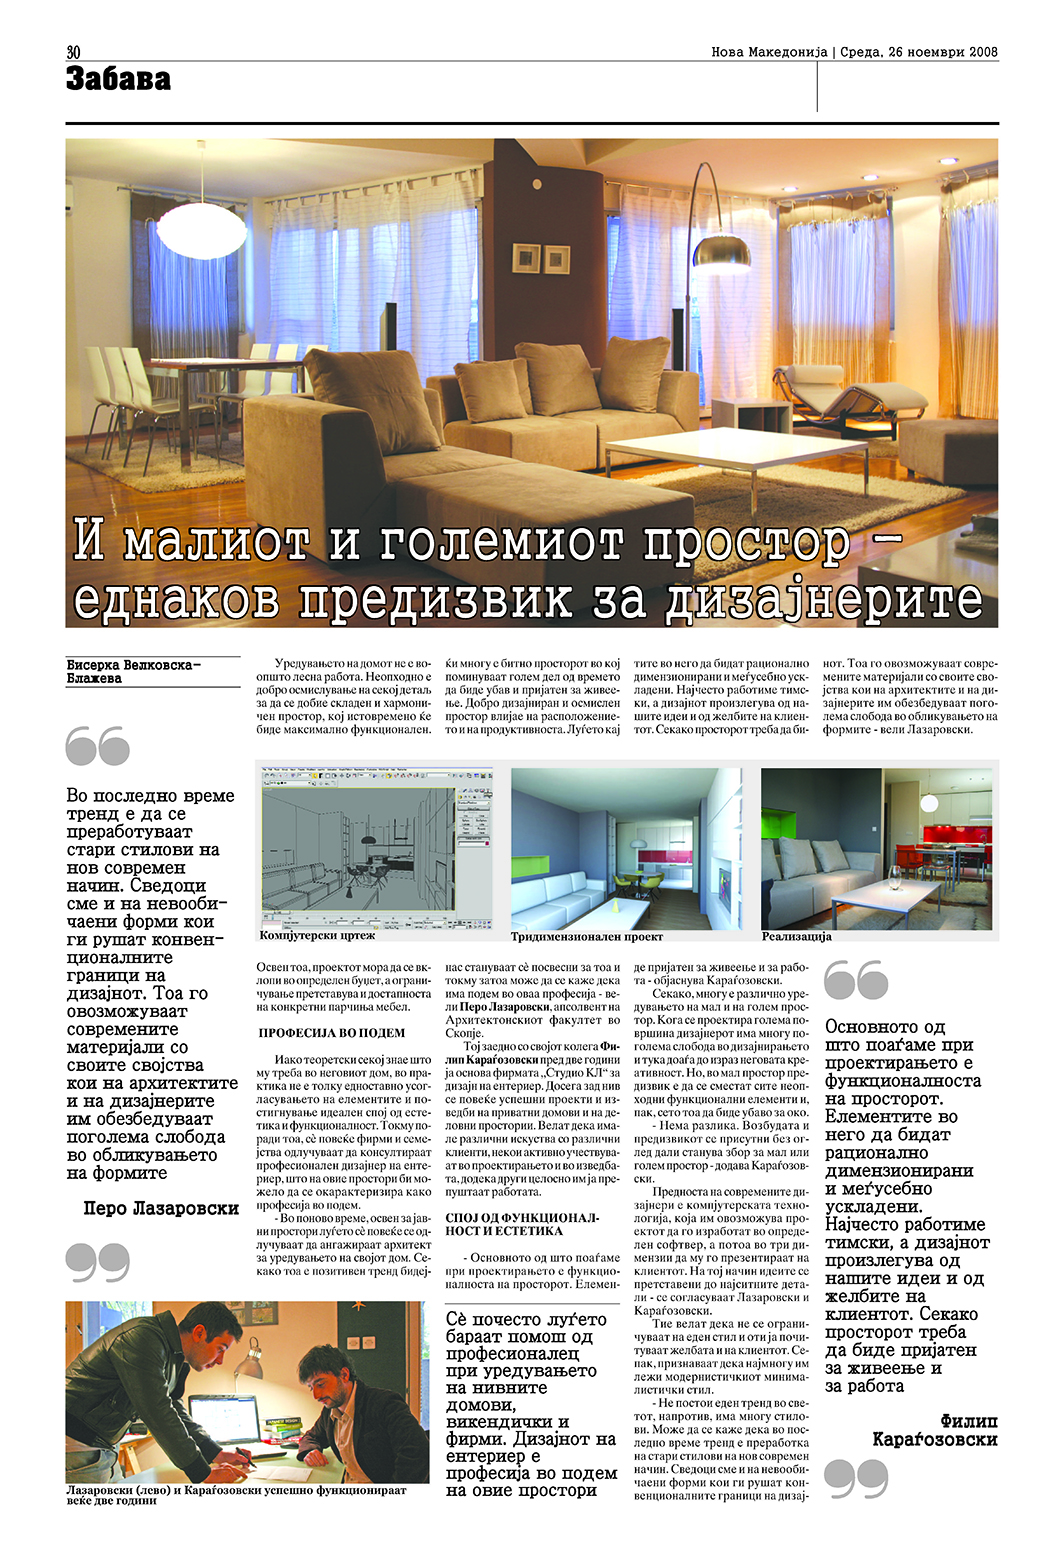 Interview for the daily news paper Nova Makedonija 26.10.2008